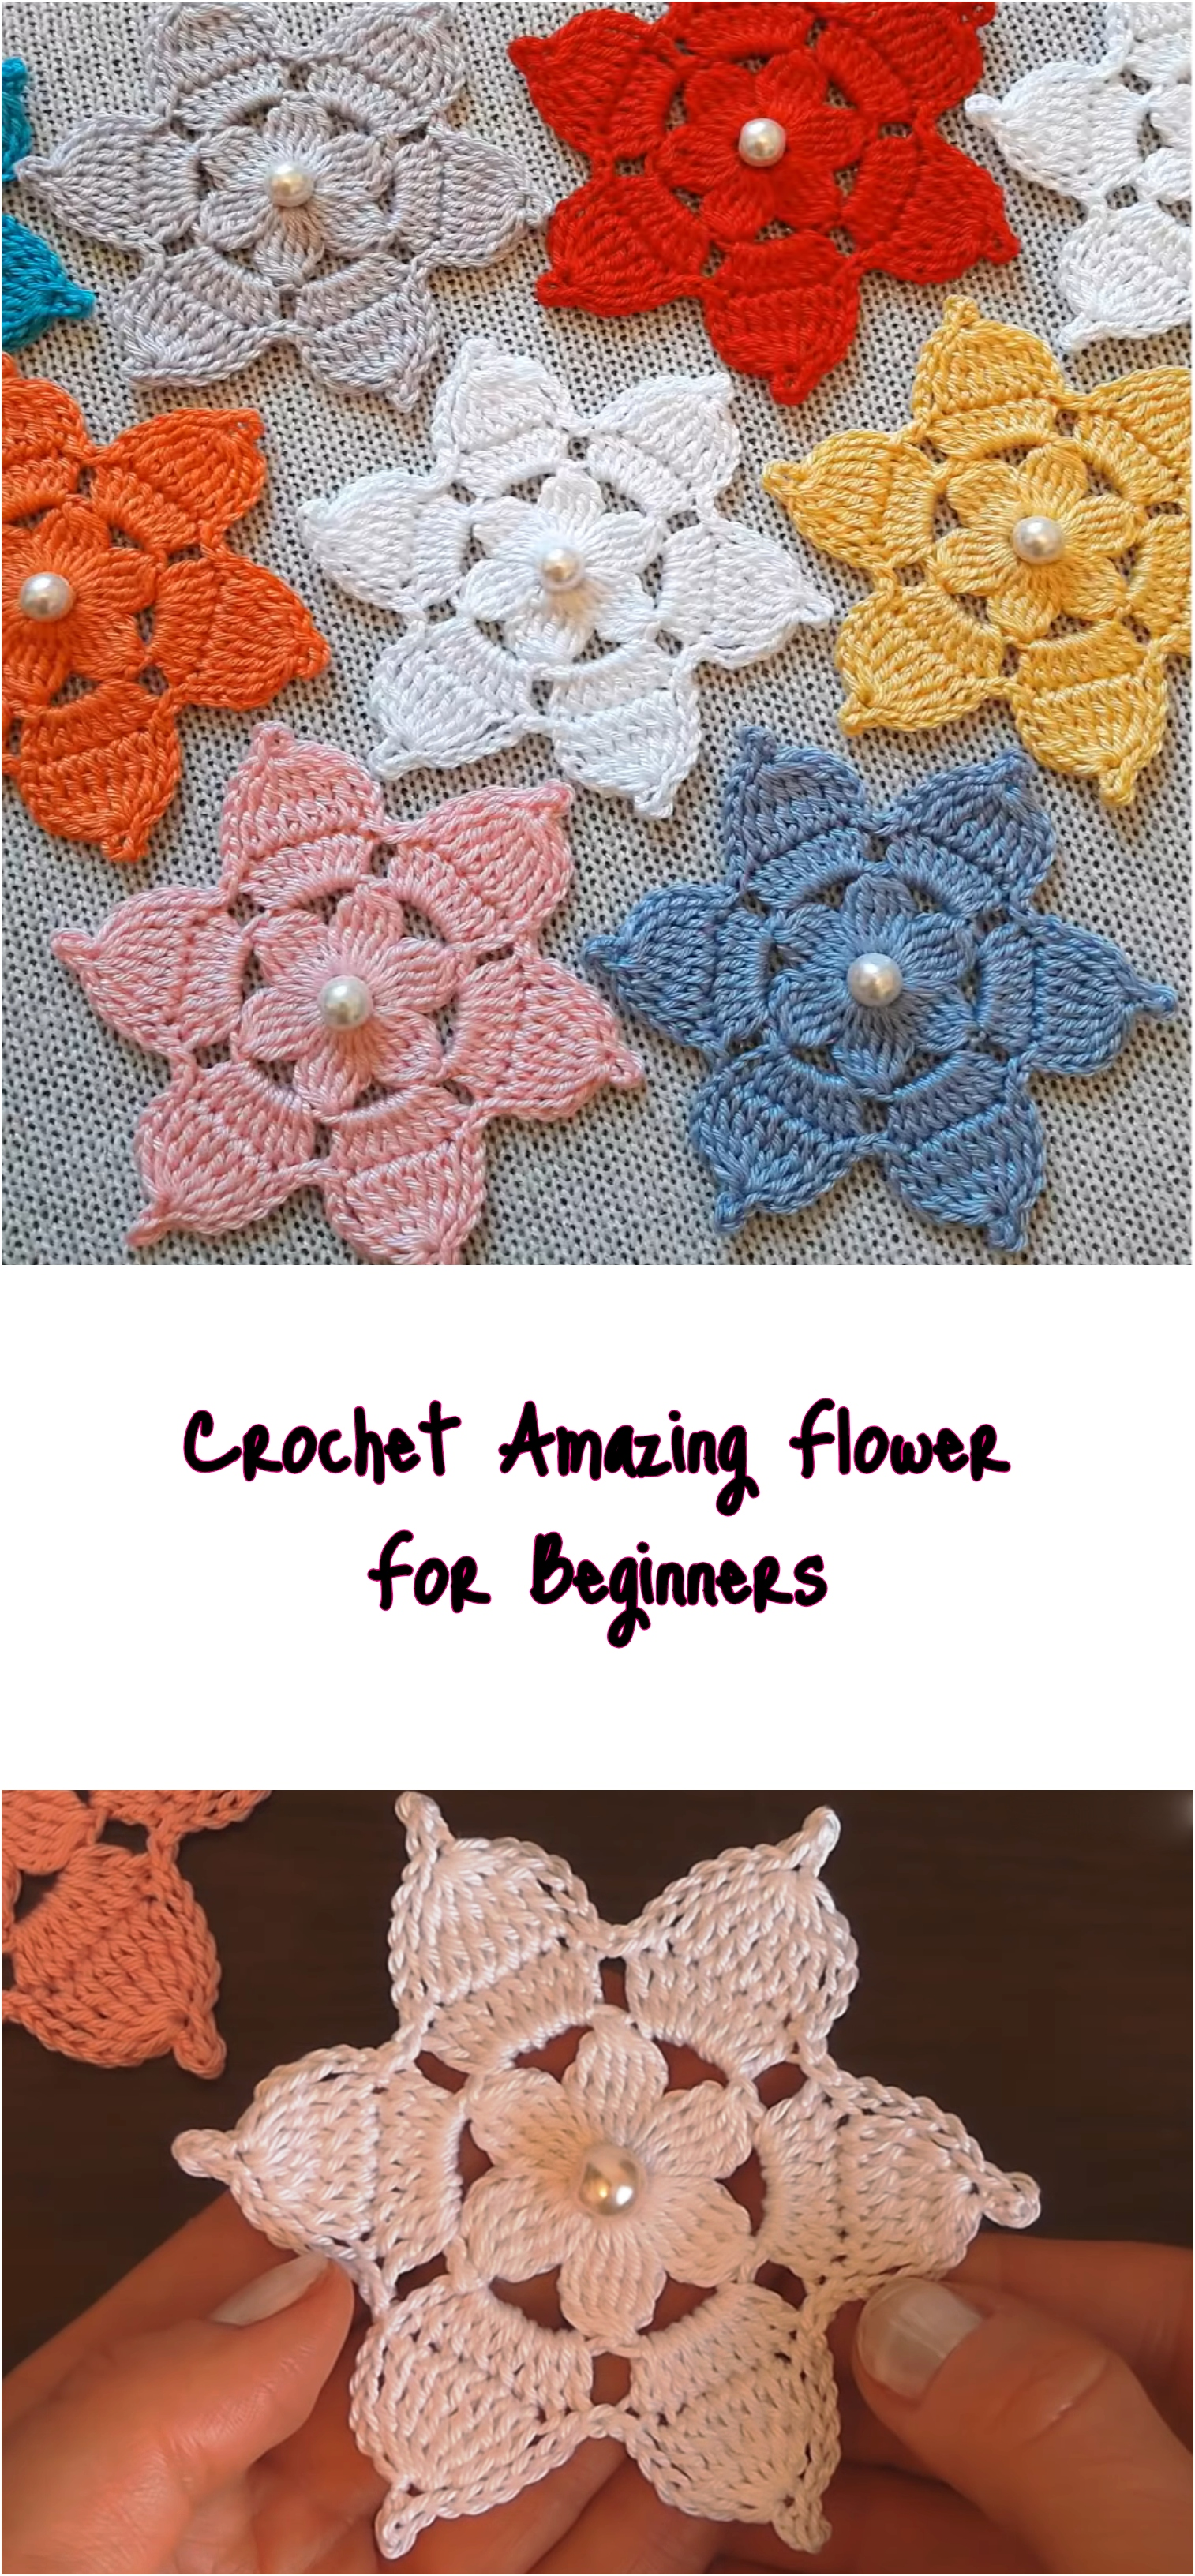 Crochet Amazing Flower For Beginners